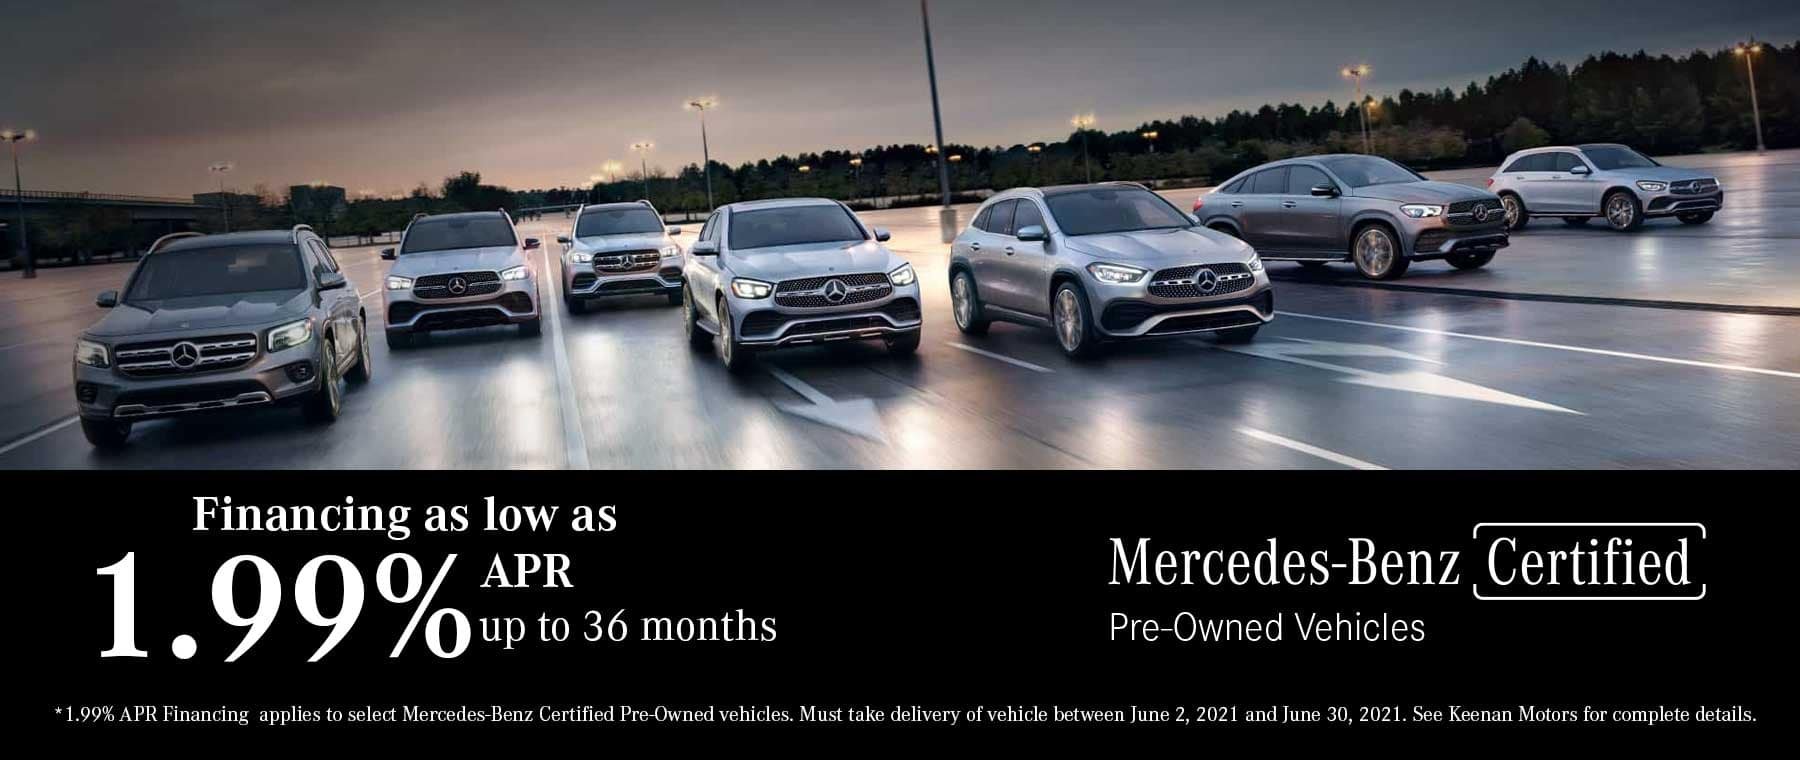 Certified Pre-Owned by Mercedes-Benz special finance offers at Keenan Motors